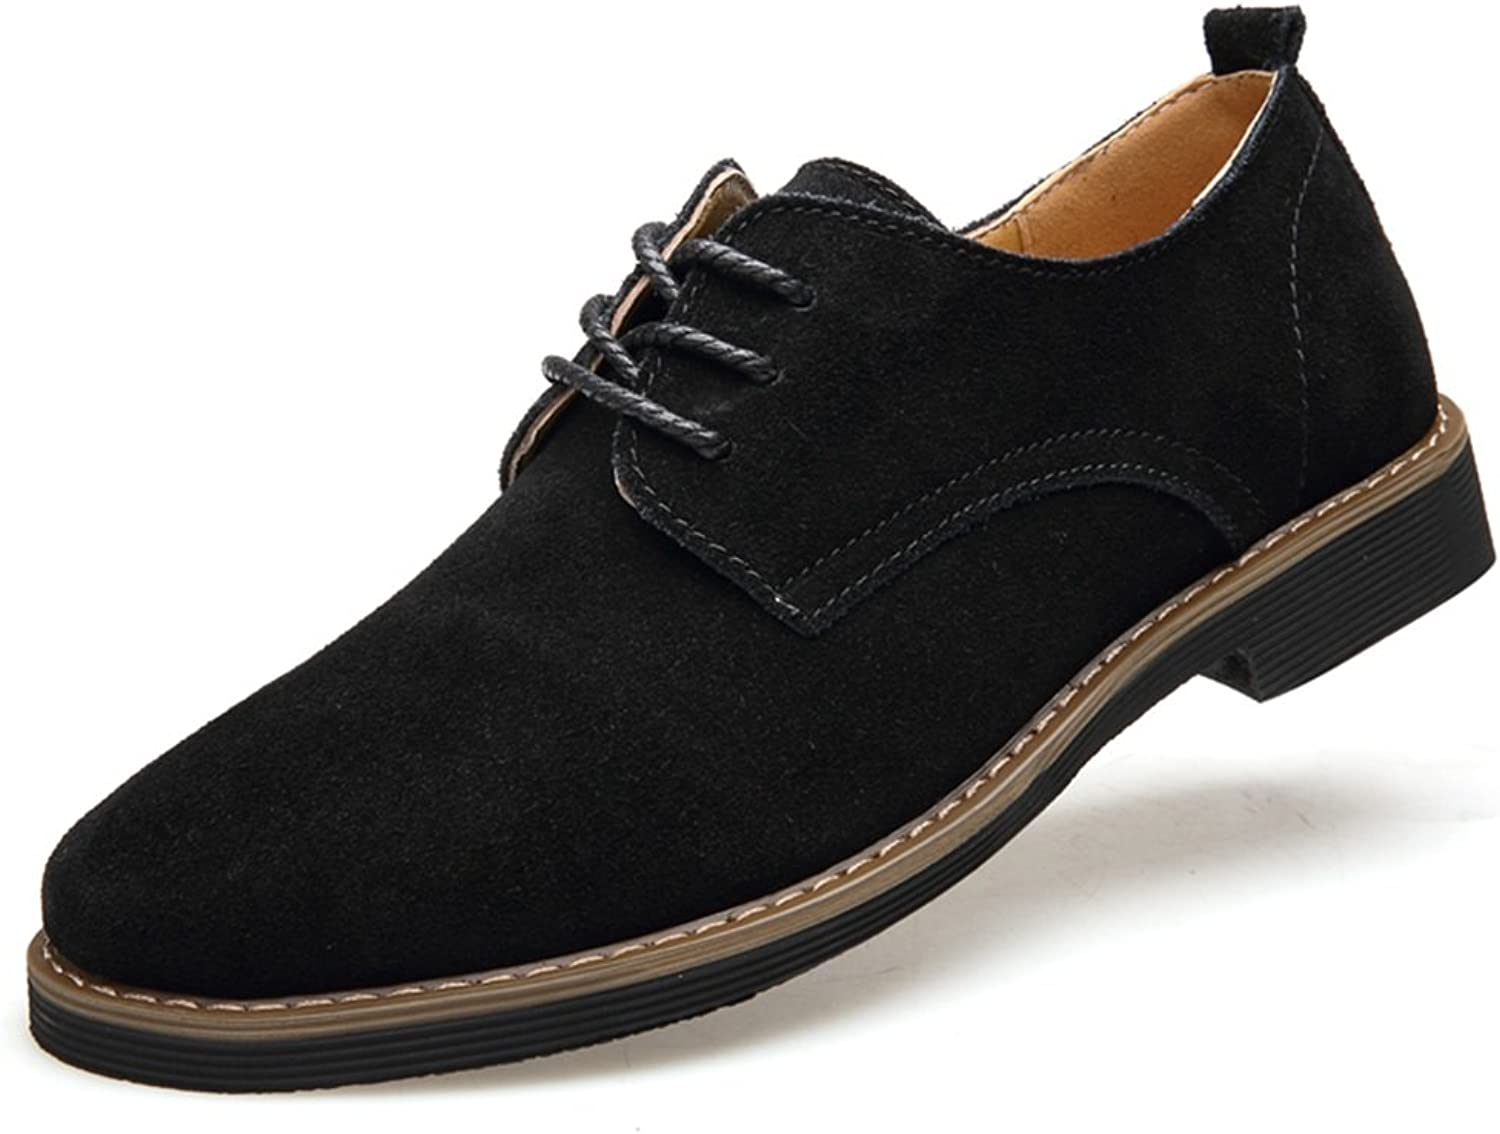 2018 New Men's shoes Suede Spring Fall Breathable Comfort Oxfords Lace-up Deck shoes Casual Formal Business Work Black, Brown, bluee (color   C, Size   44)